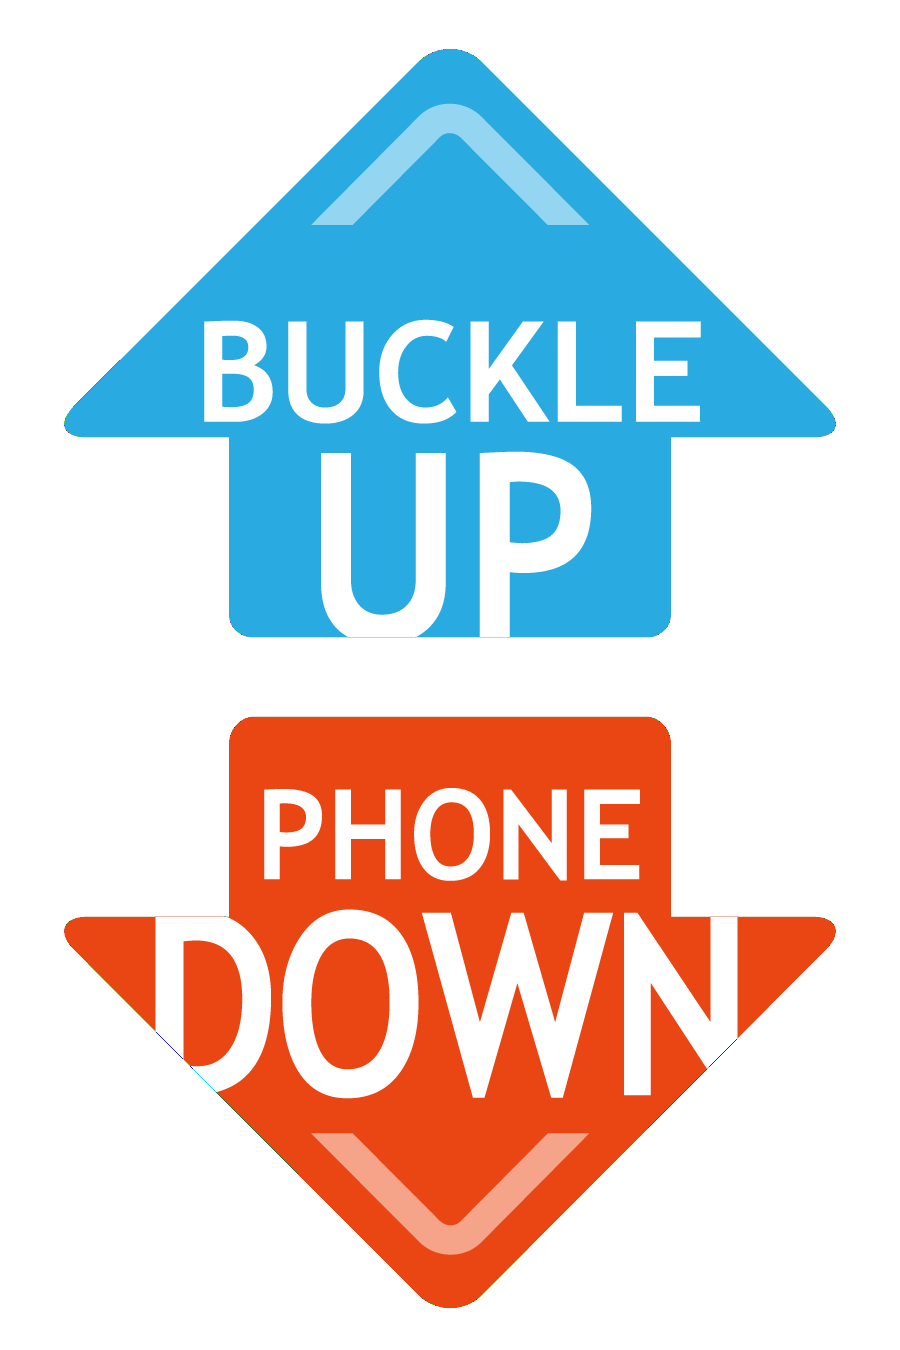 Buckle Up Phone Down logo